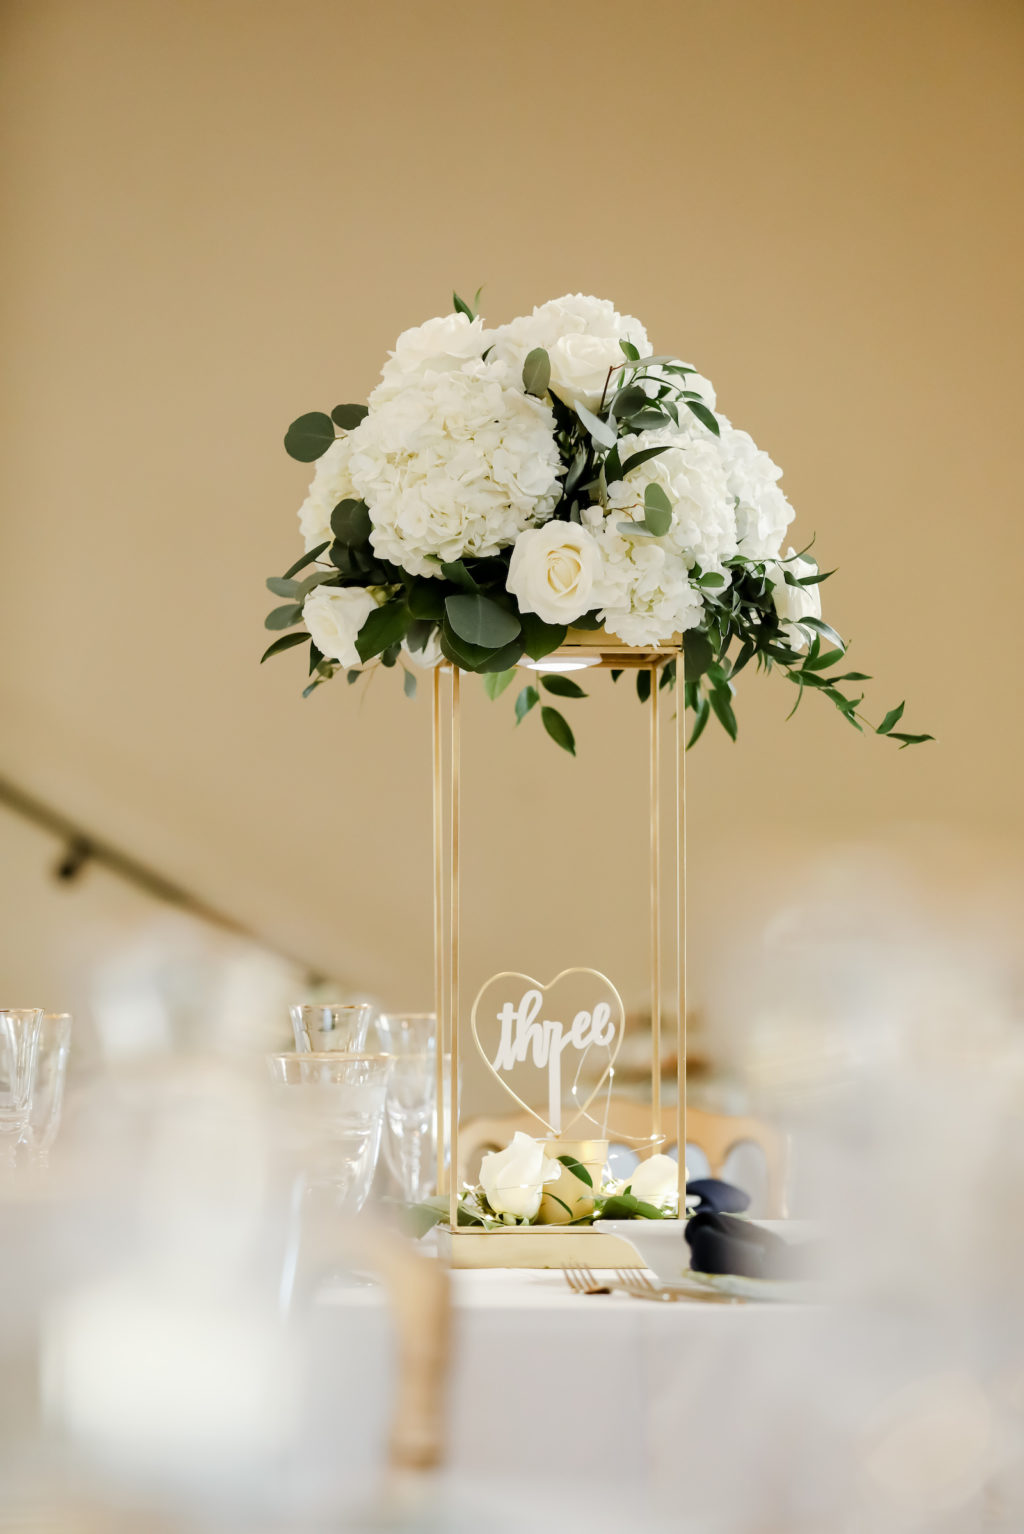 Classic Wedding Reception Decor, Tall Gold Stand with White Hydrangeas, Roses and Greenery Floral Centerpiece | Tampa Bay Wedding Photographer Lifelong Photography Studio | Wedding Planner Core Concepts | Wedding Rentals A Chair Affair | Kate Ryan Event Rentals